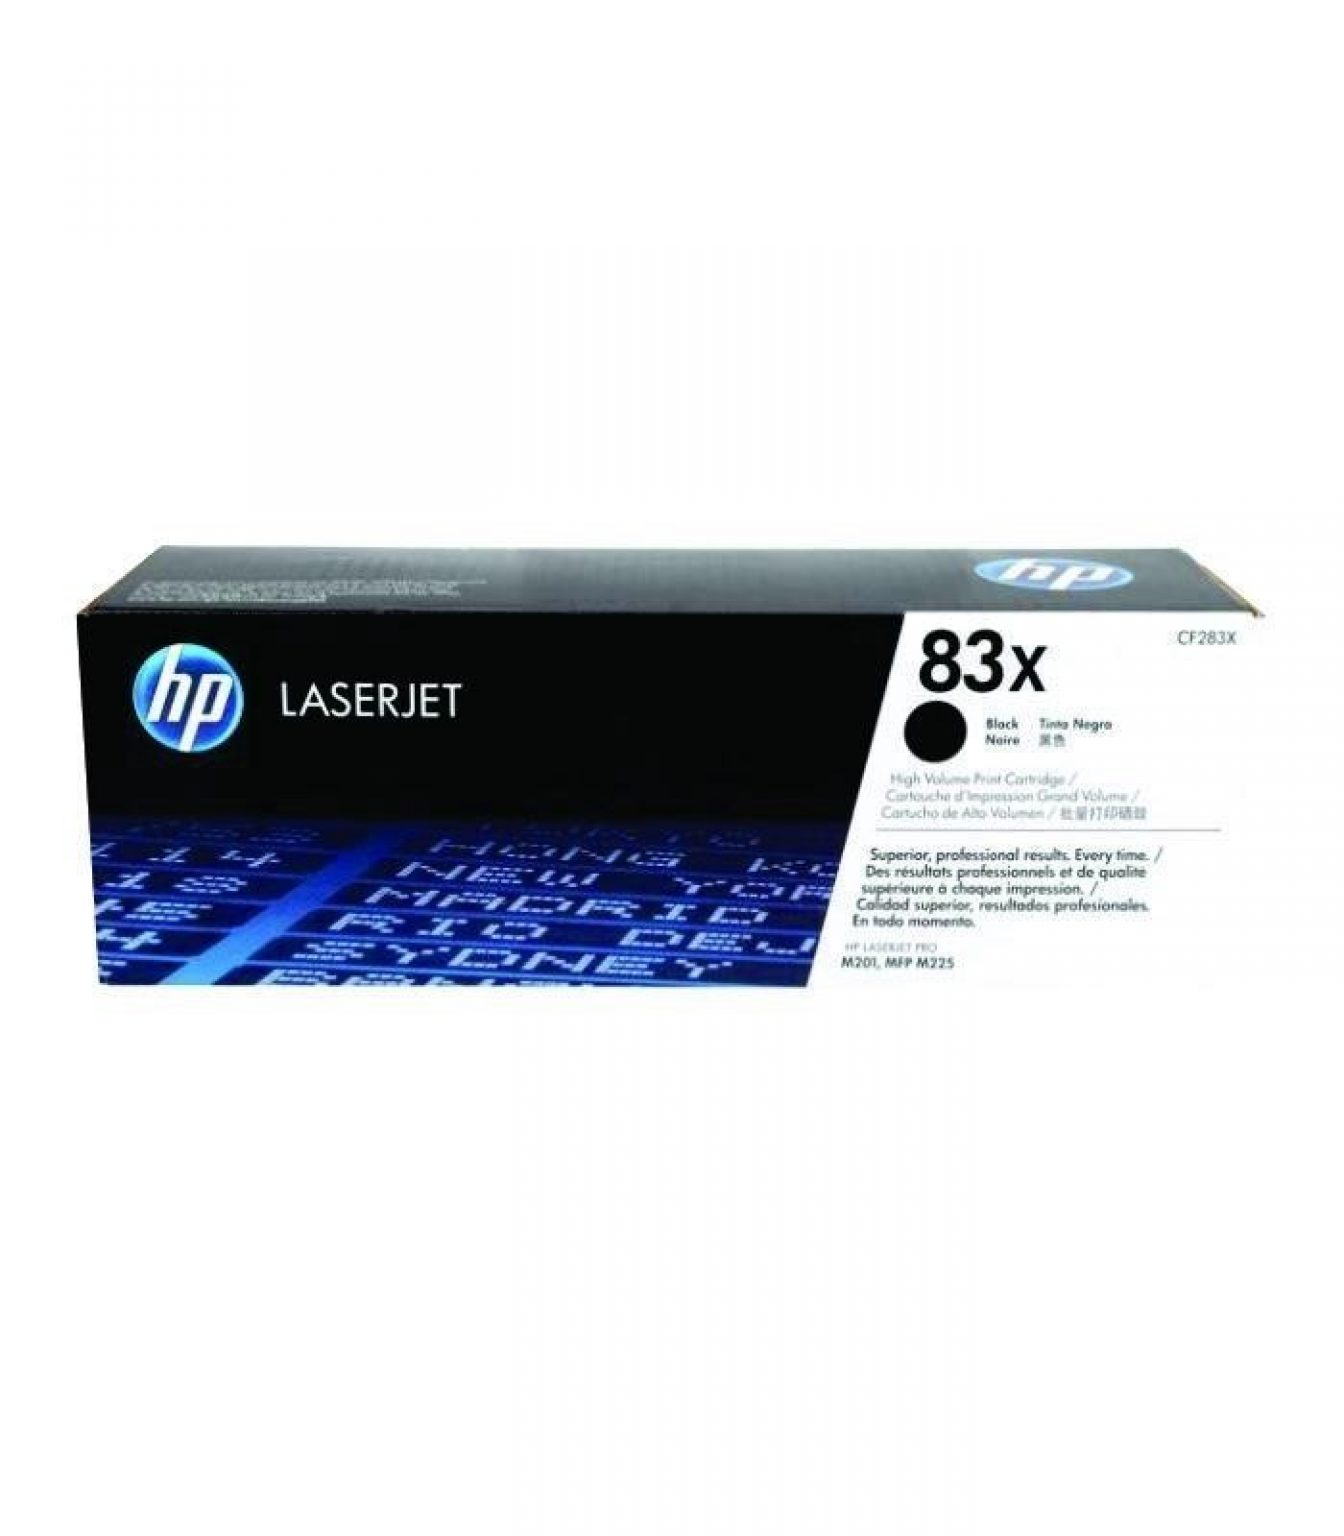 HP - LaserJet 83X Black Toner Cartridge [CF283X]